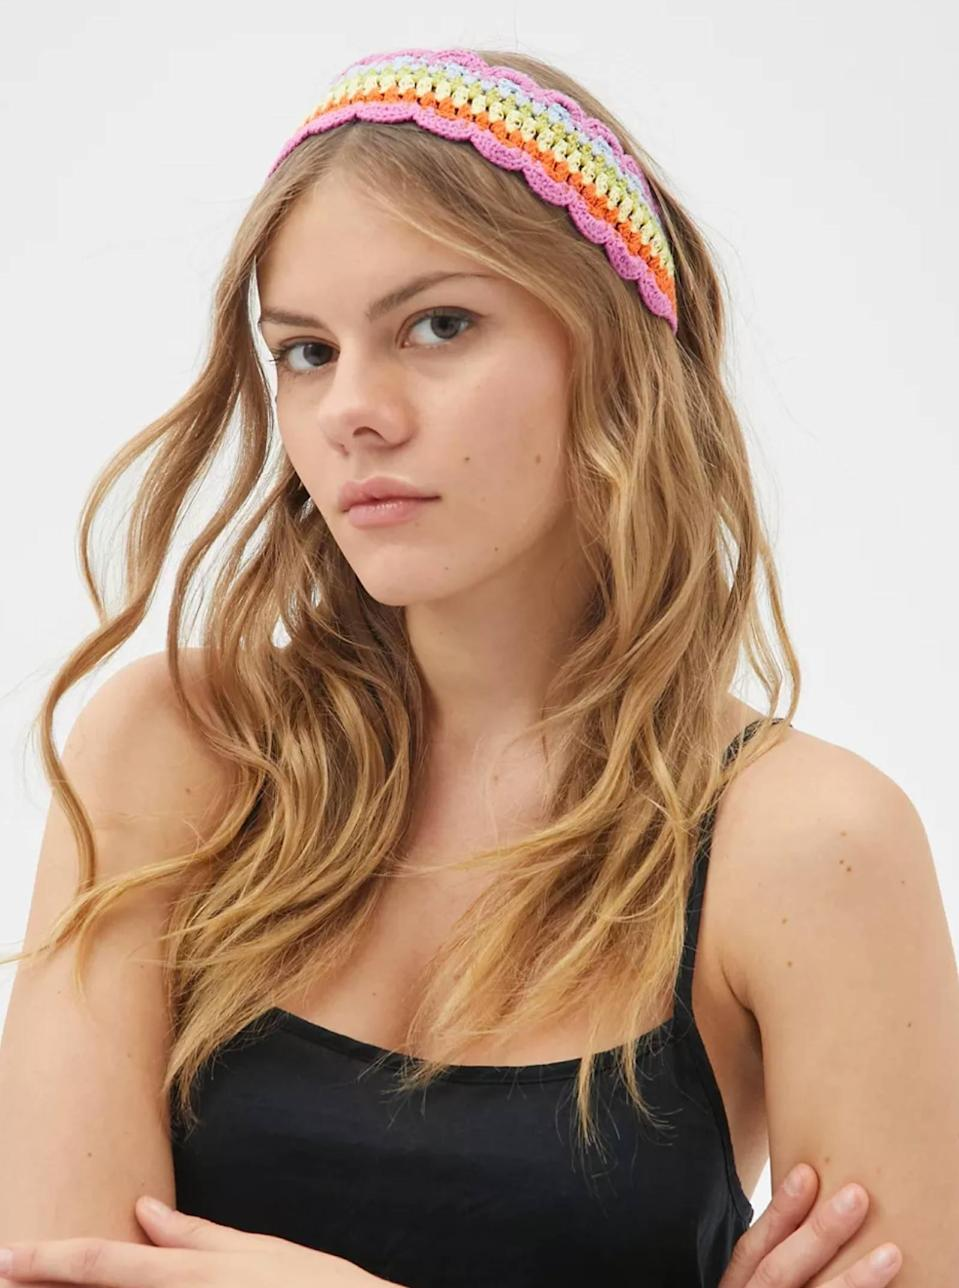 """Over your padded headband? Try this knit option as a fresh alternative, which will add instant flair to a messy updo or long, flowing <a href=""""https://www.glamour.com/story/how-to-grow-hair-faster?mbid=synd_yahoo_rss"""" rel=""""nofollow noopener"""" target=""""_blank"""" data-ylk=""""slk:quarantine hair"""" class=""""link rapid-noclick-resp"""">quarantine hair</a>. $12, Urban Outfitters. <a href=""""https://www.urbanoutfitters.com/shop/shatzi-crochet-headband?"""" rel=""""nofollow noopener"""" target=""""_blank"""" data-ylk=""""slk:Get it now!"""" class=""""link rapid-noclick-resp"""">Get it now!</a>"""